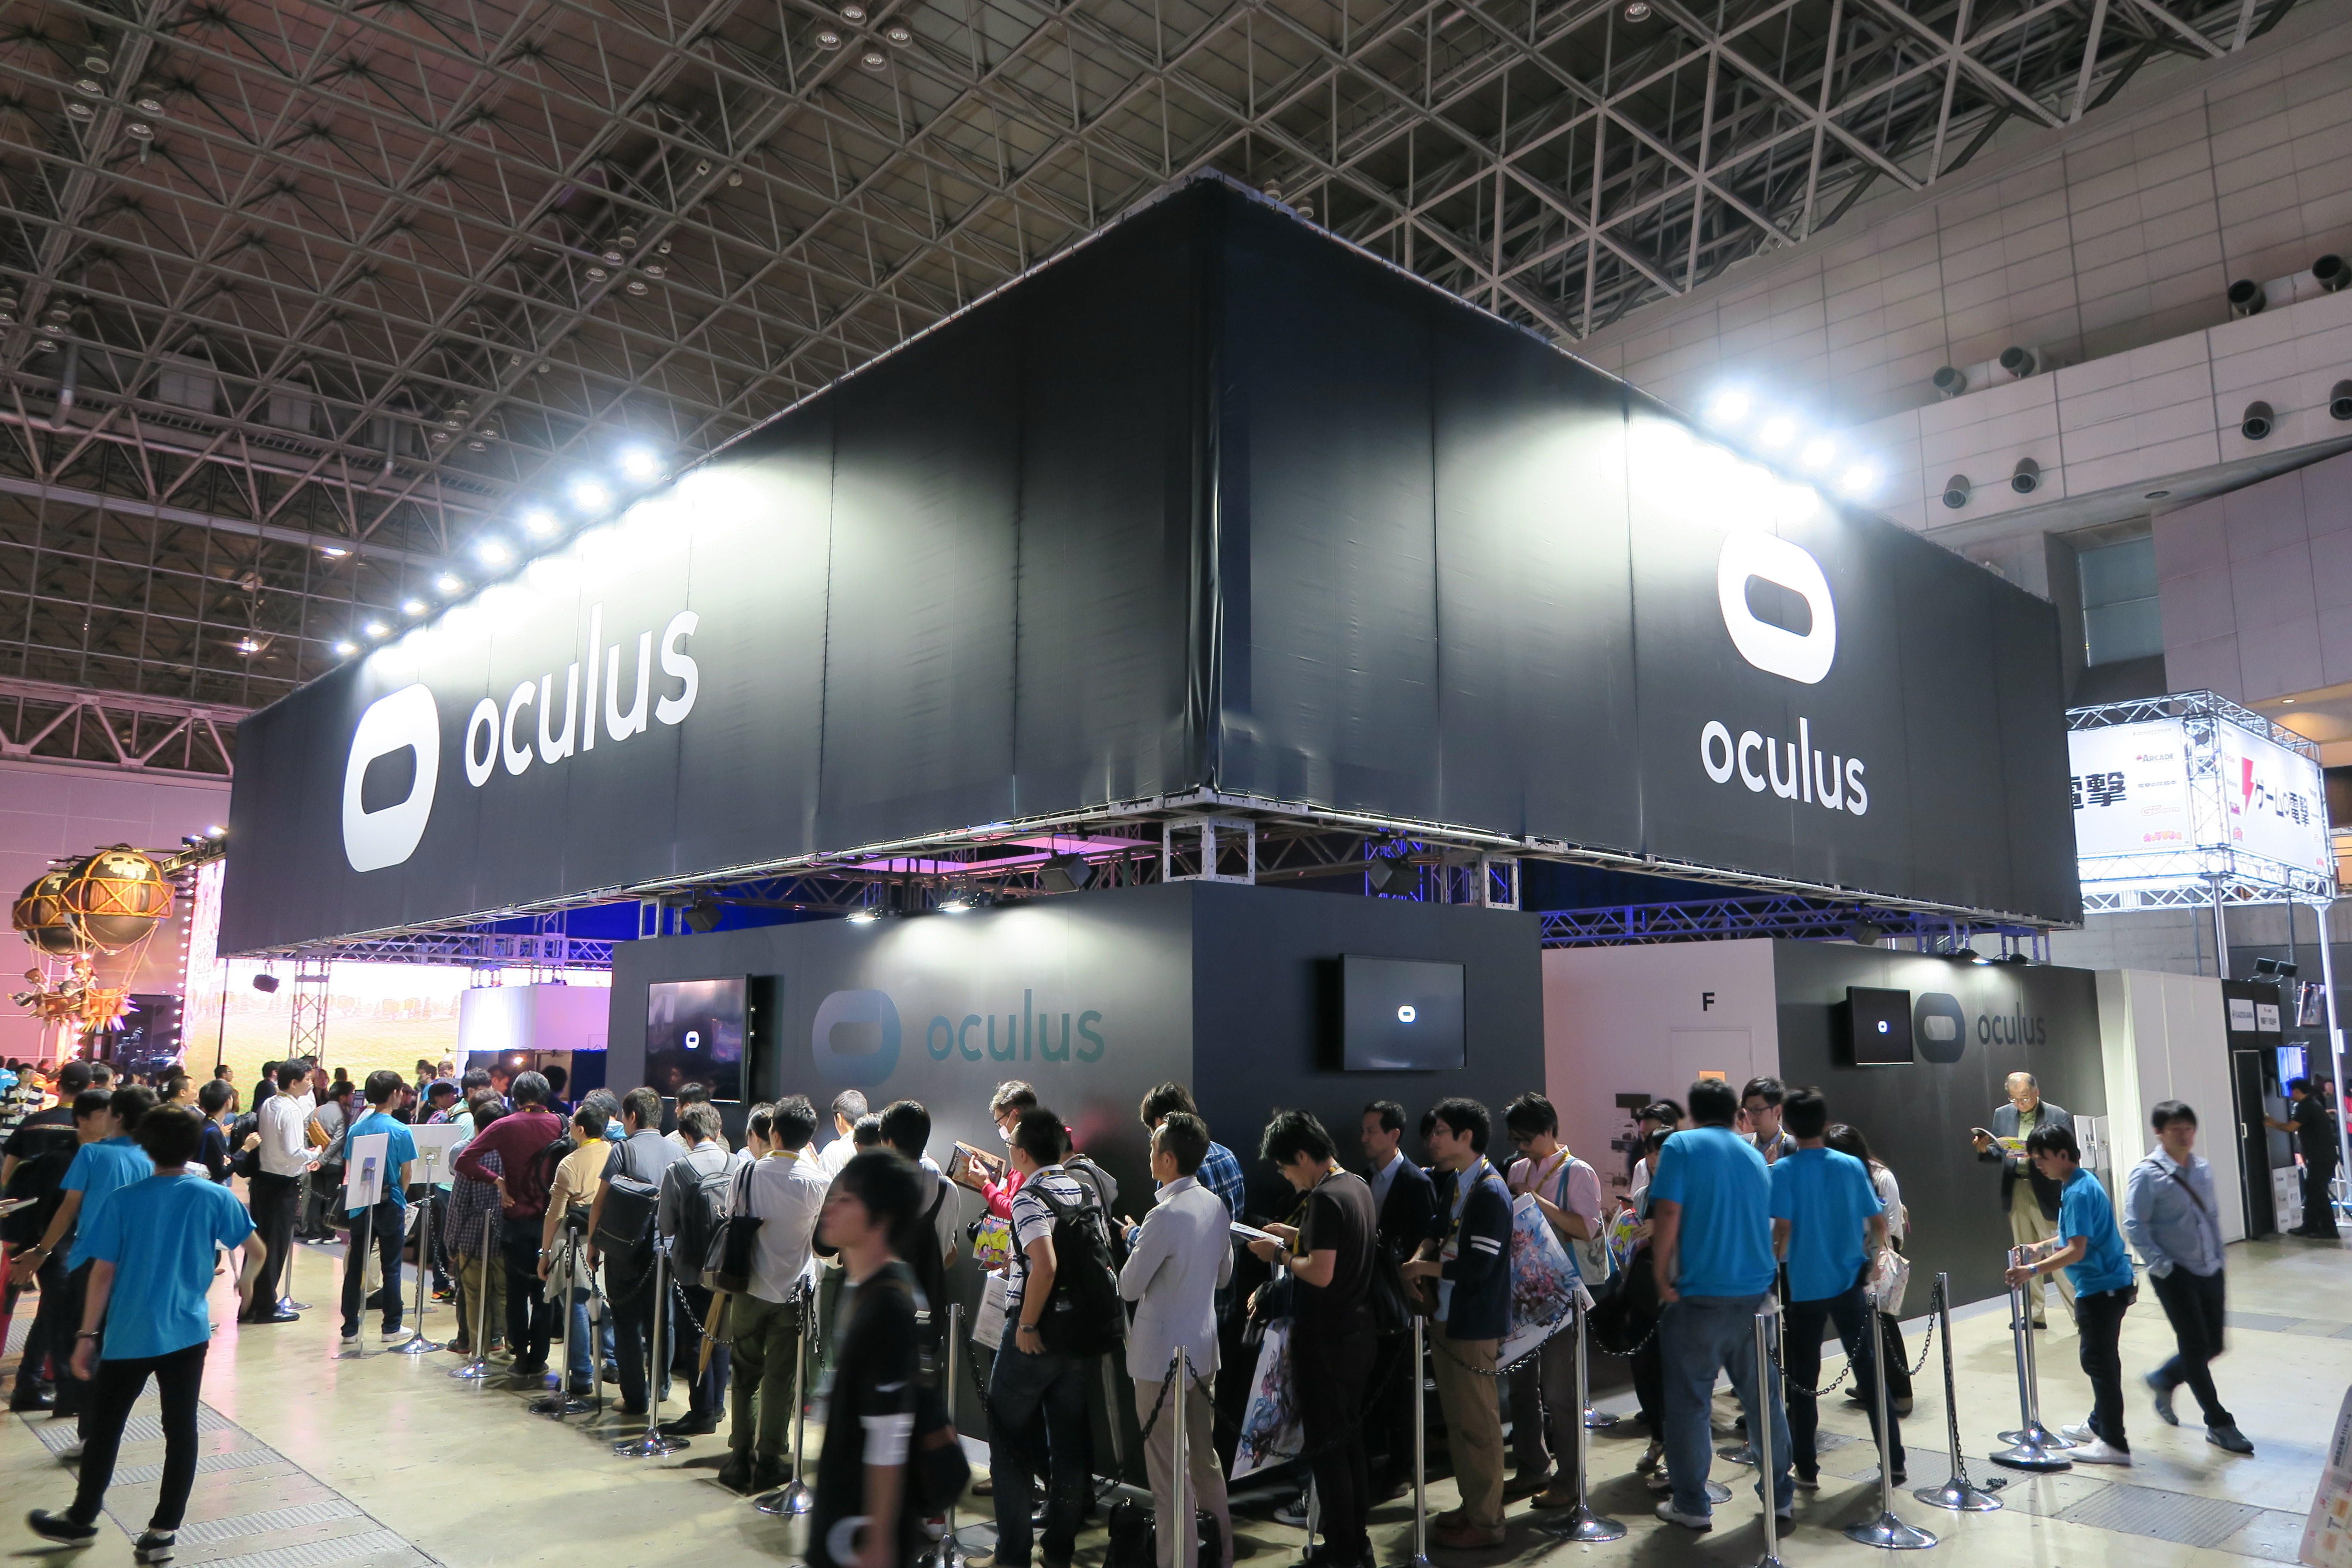 TOKYO GAME SHOW 2015 Oculus Booth